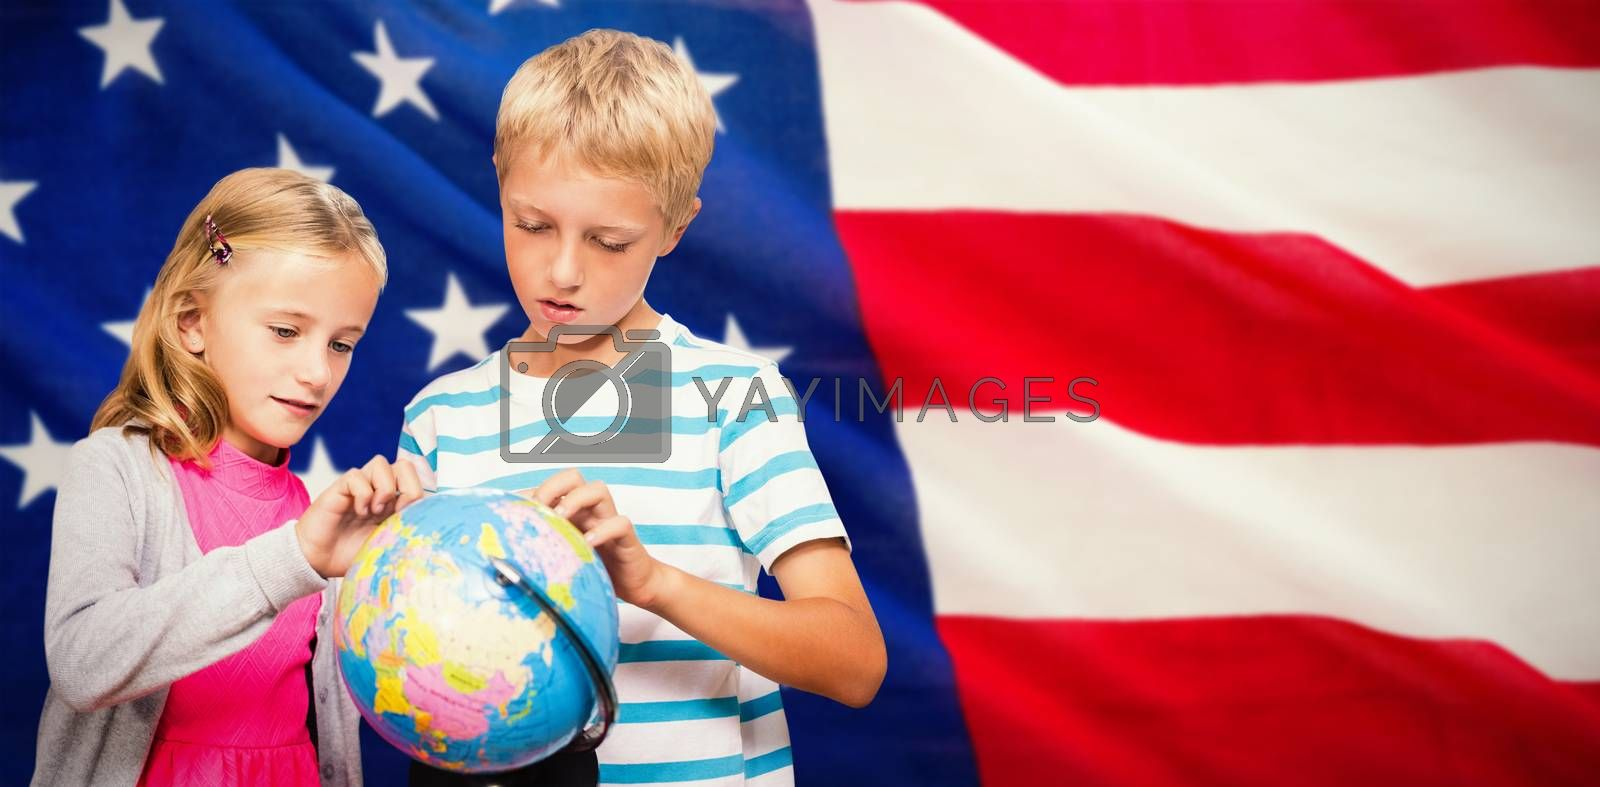 Composite image of friends looking at globe by Wavebreakmedia